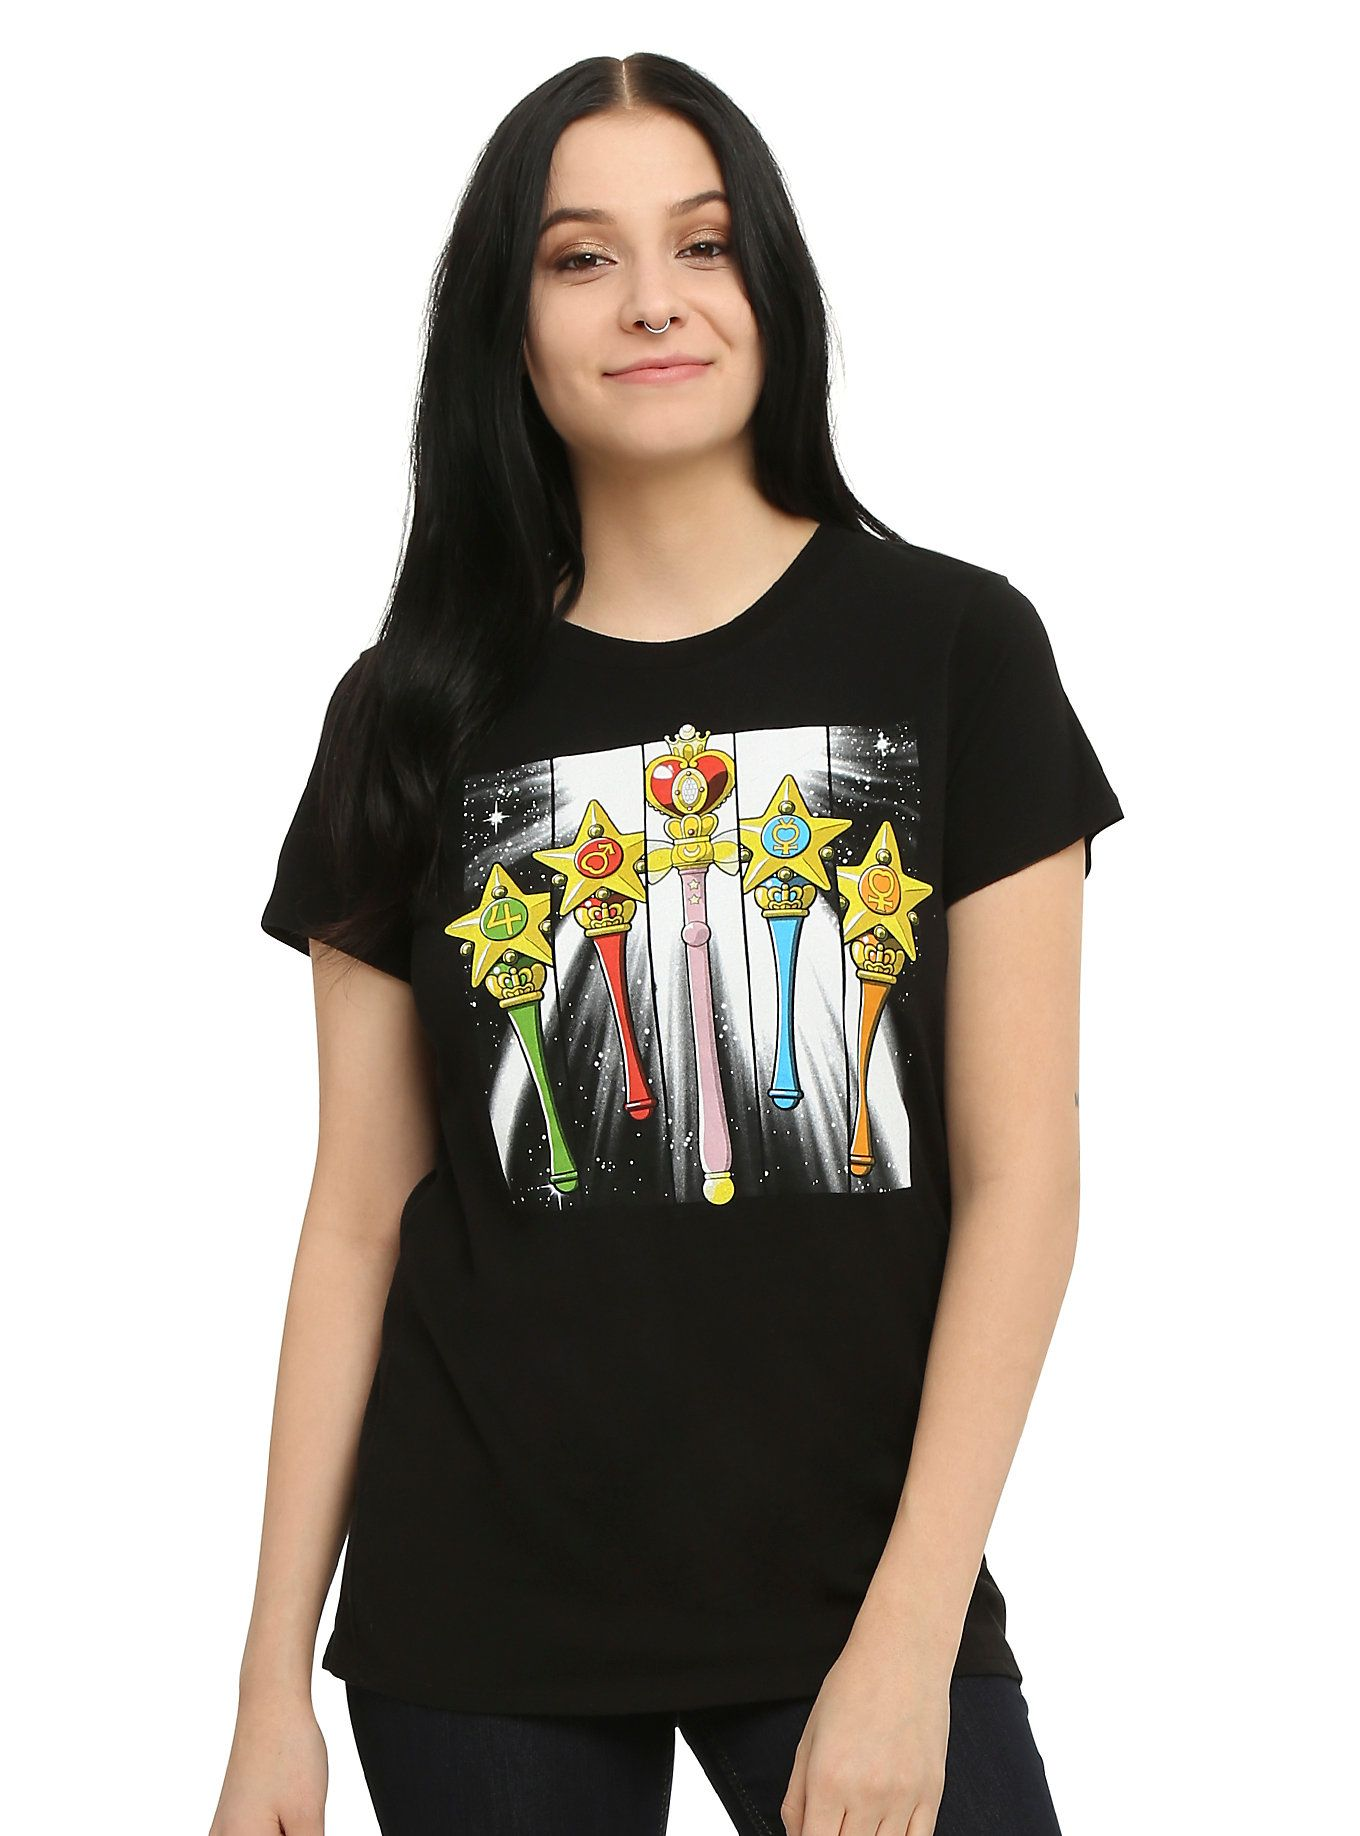 1da44d3b4e0  p Fitted black tee from  i Sailor Moon  i  with colorful transformation  wands design on front.  p   ul   li 50% cotton  50% polyester  li   li Wash  cold  ...